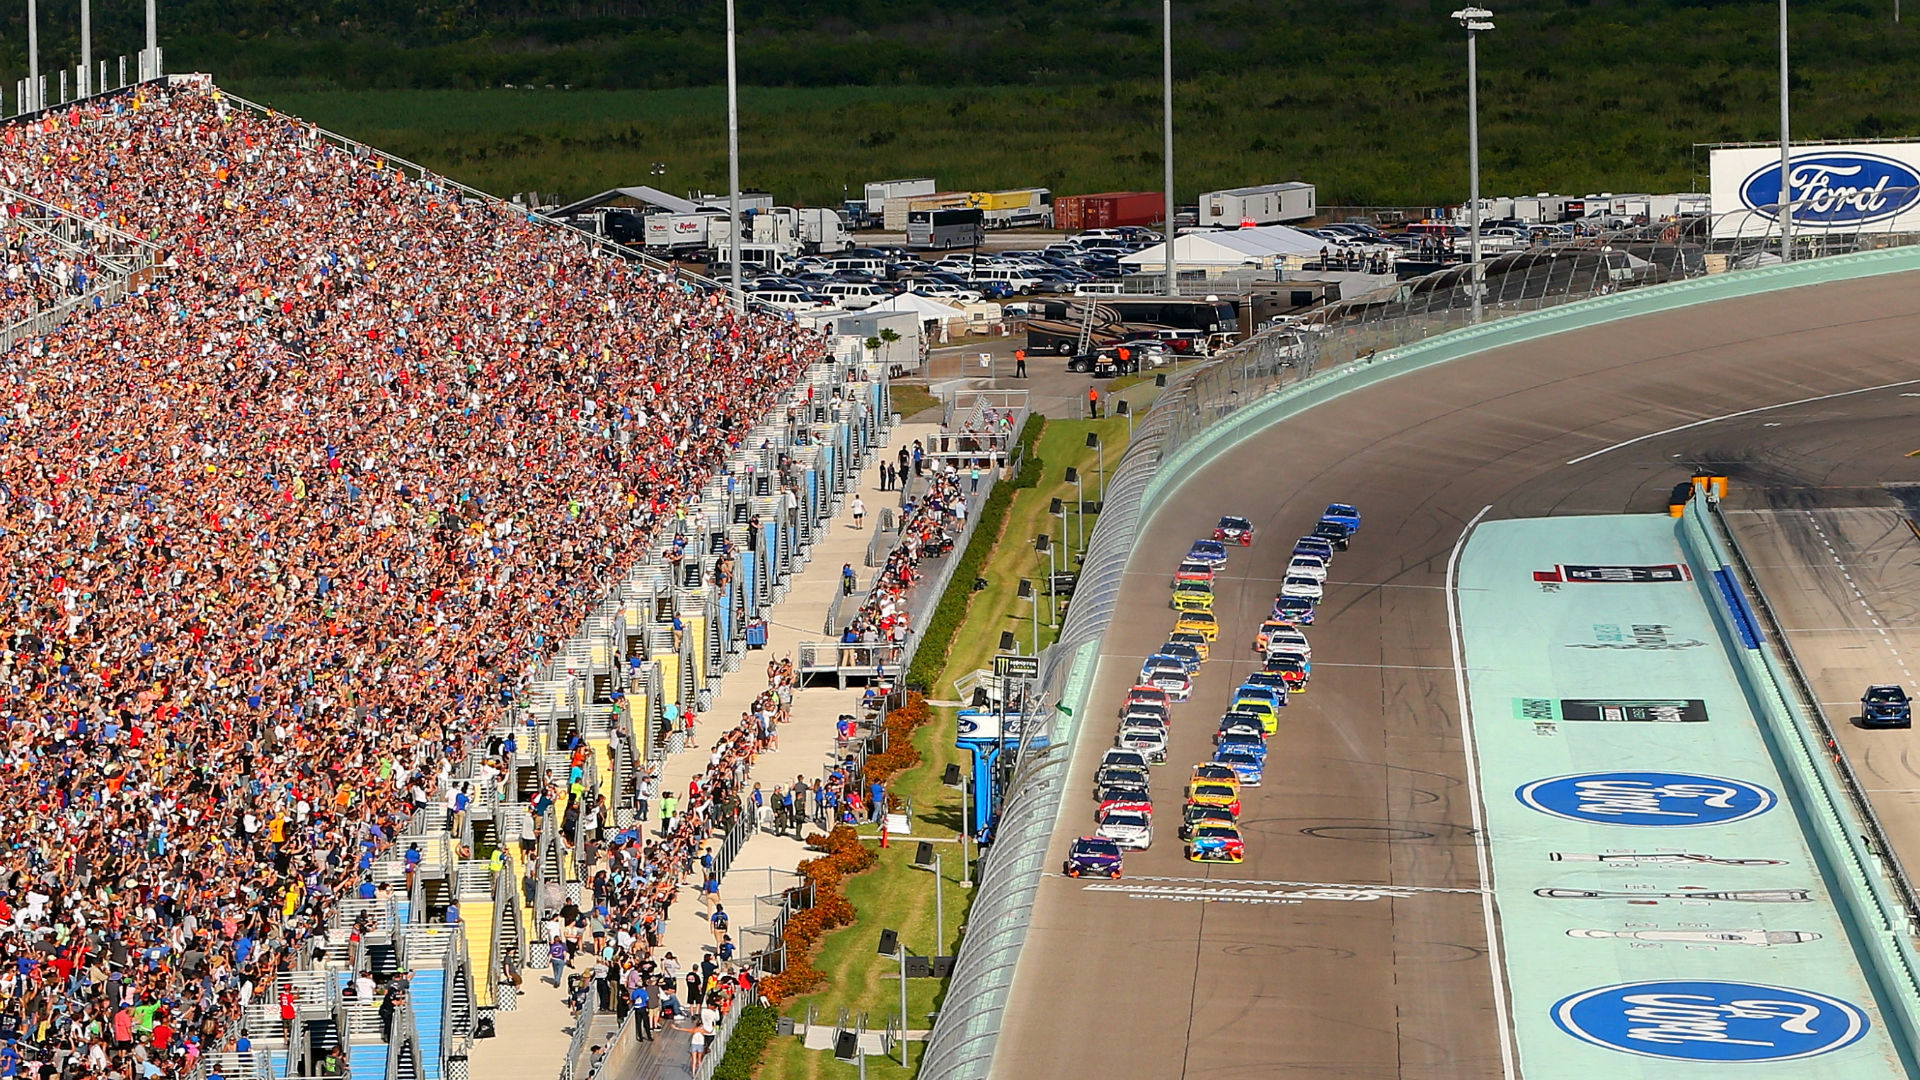 New NASCAR schedule for 2020: Tracking canceled & postponed races as coronavirus pandemic continues